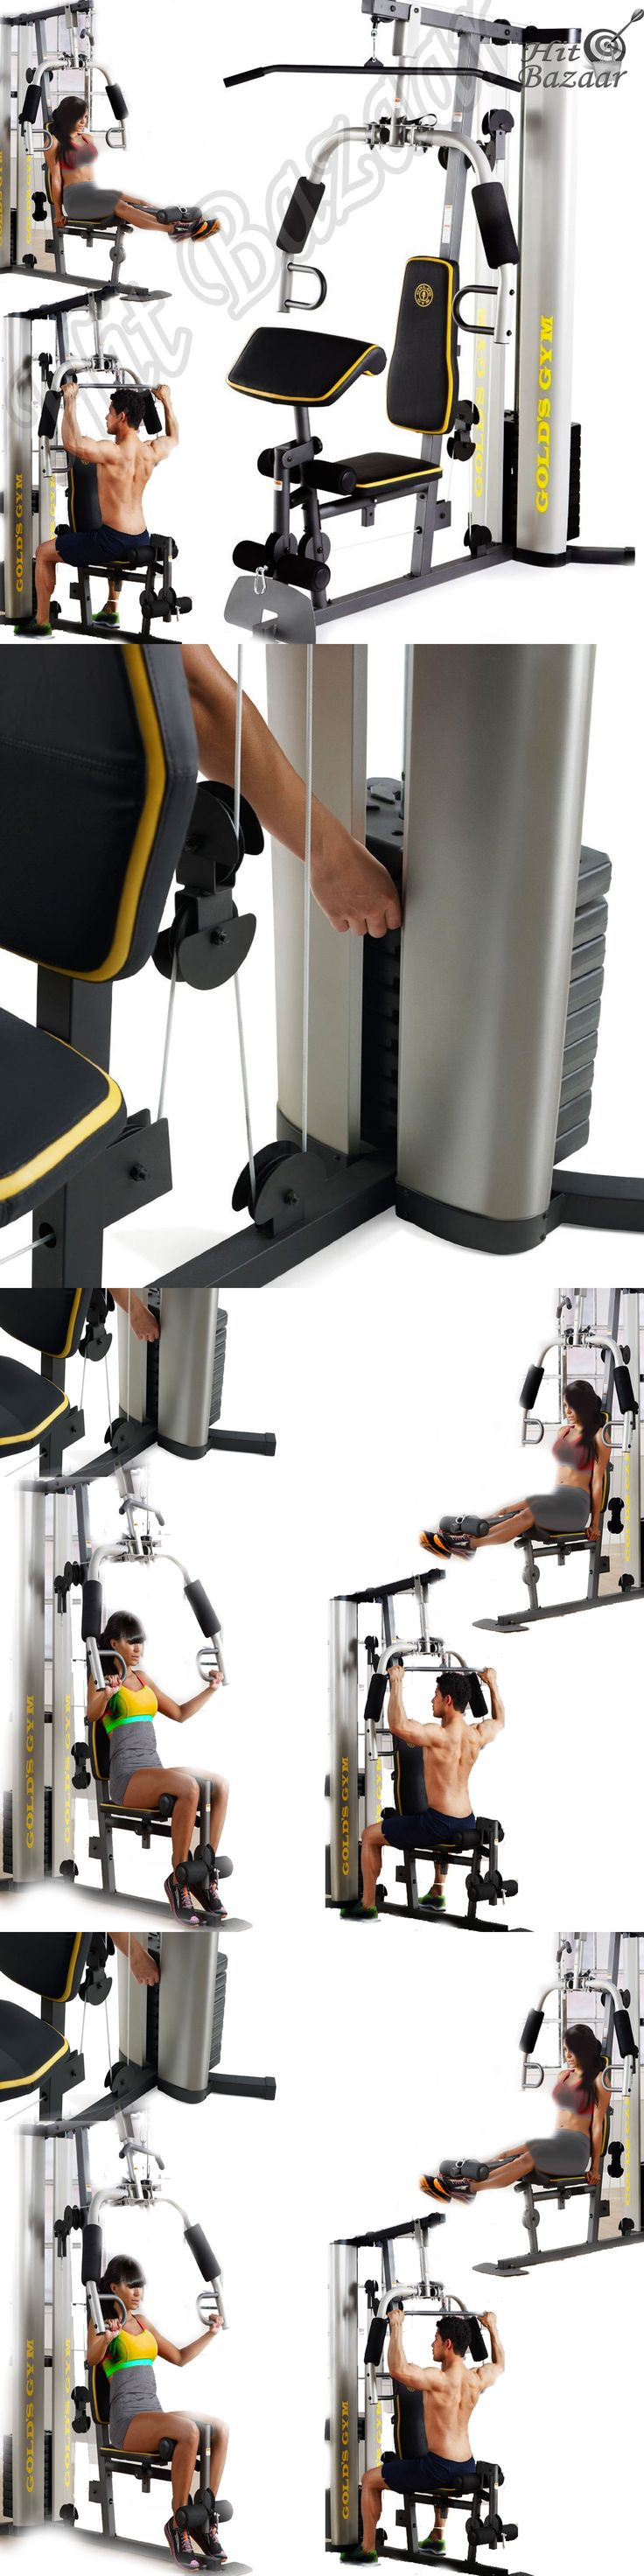 Home Gyms 158923: Gym System Strength Training Workout Equipment Home Exercise Machine Weight Lift -> BUY IT NOW ONLY: $346.22 on eBay!